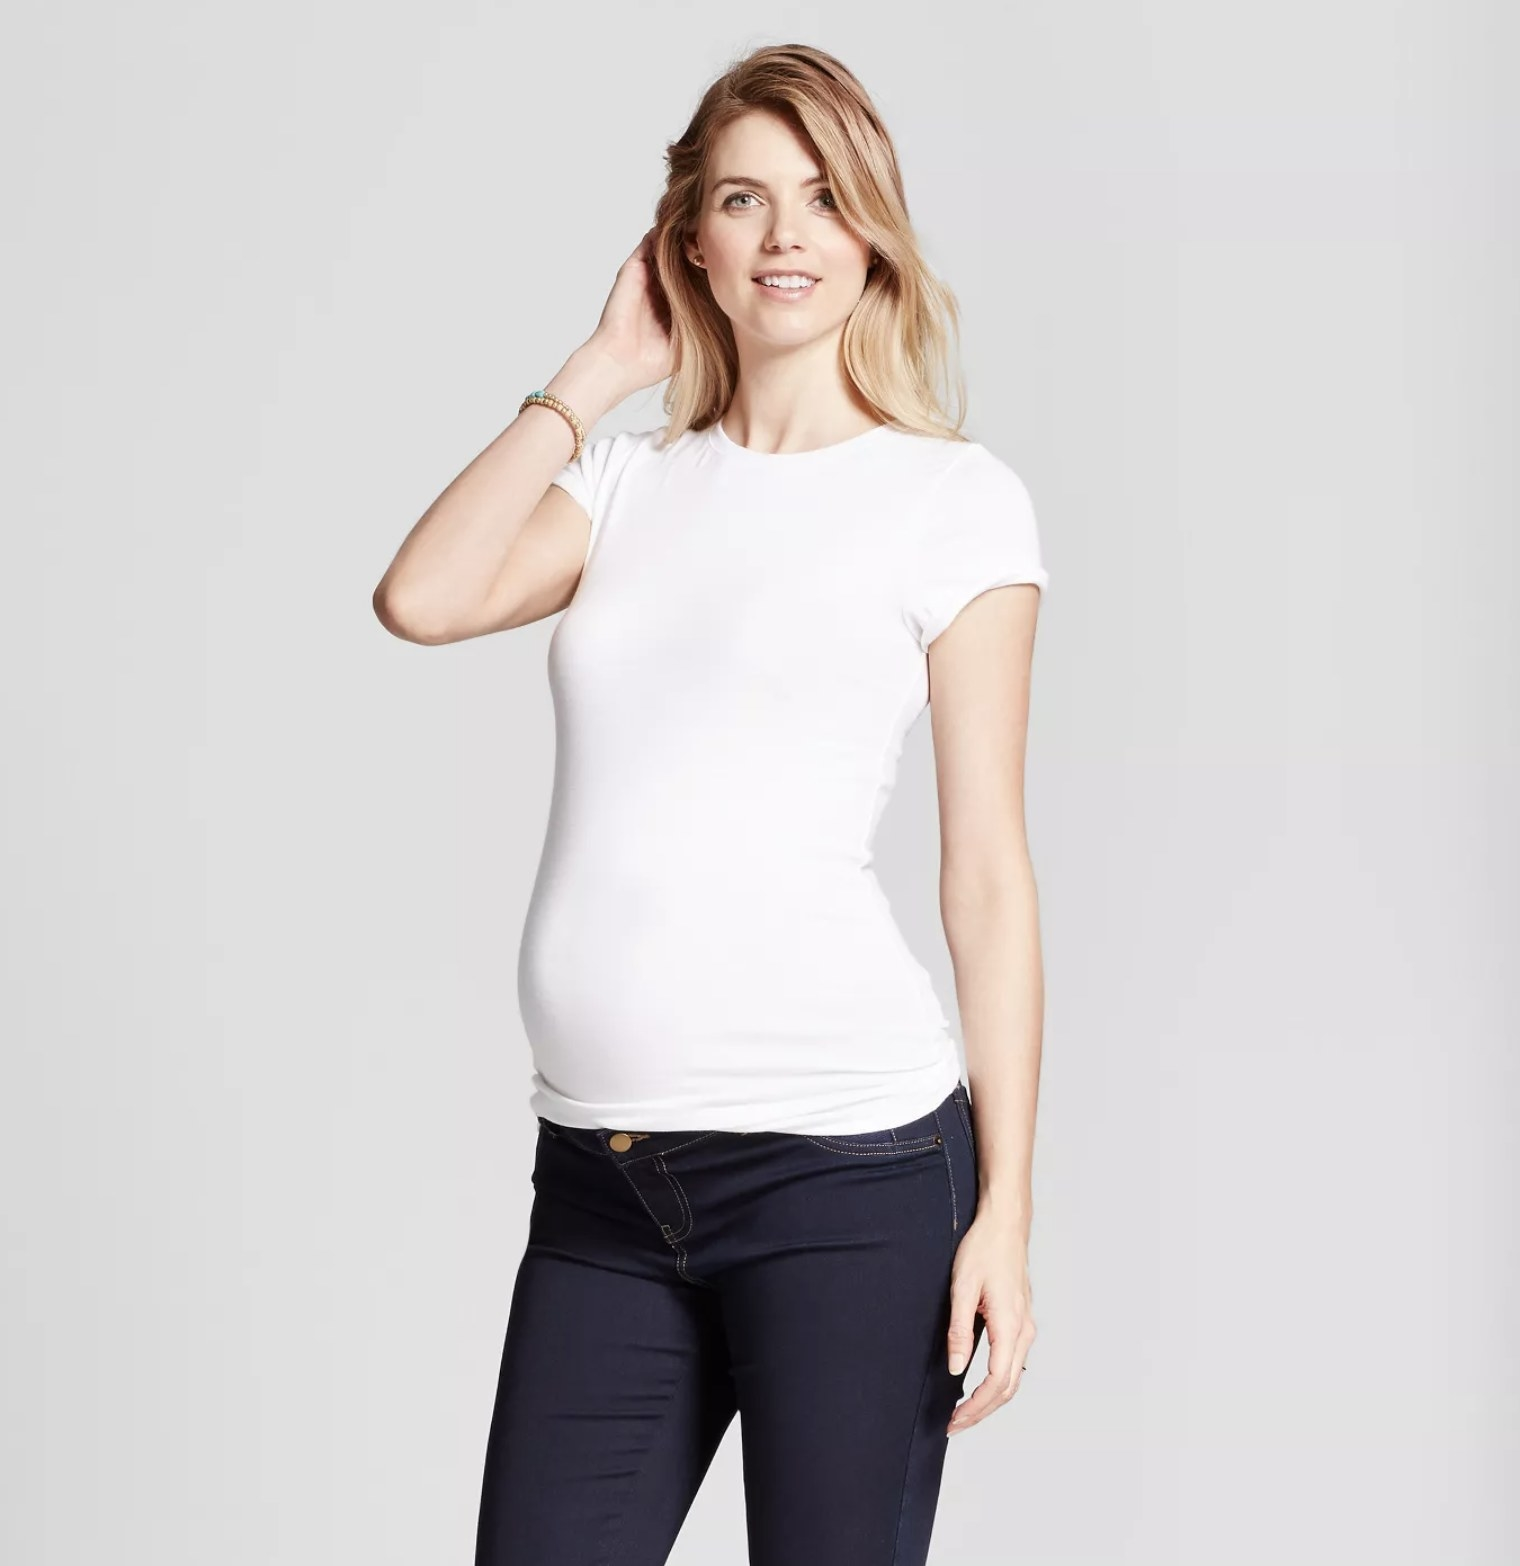 Pregnant model wearing the white T-shirt